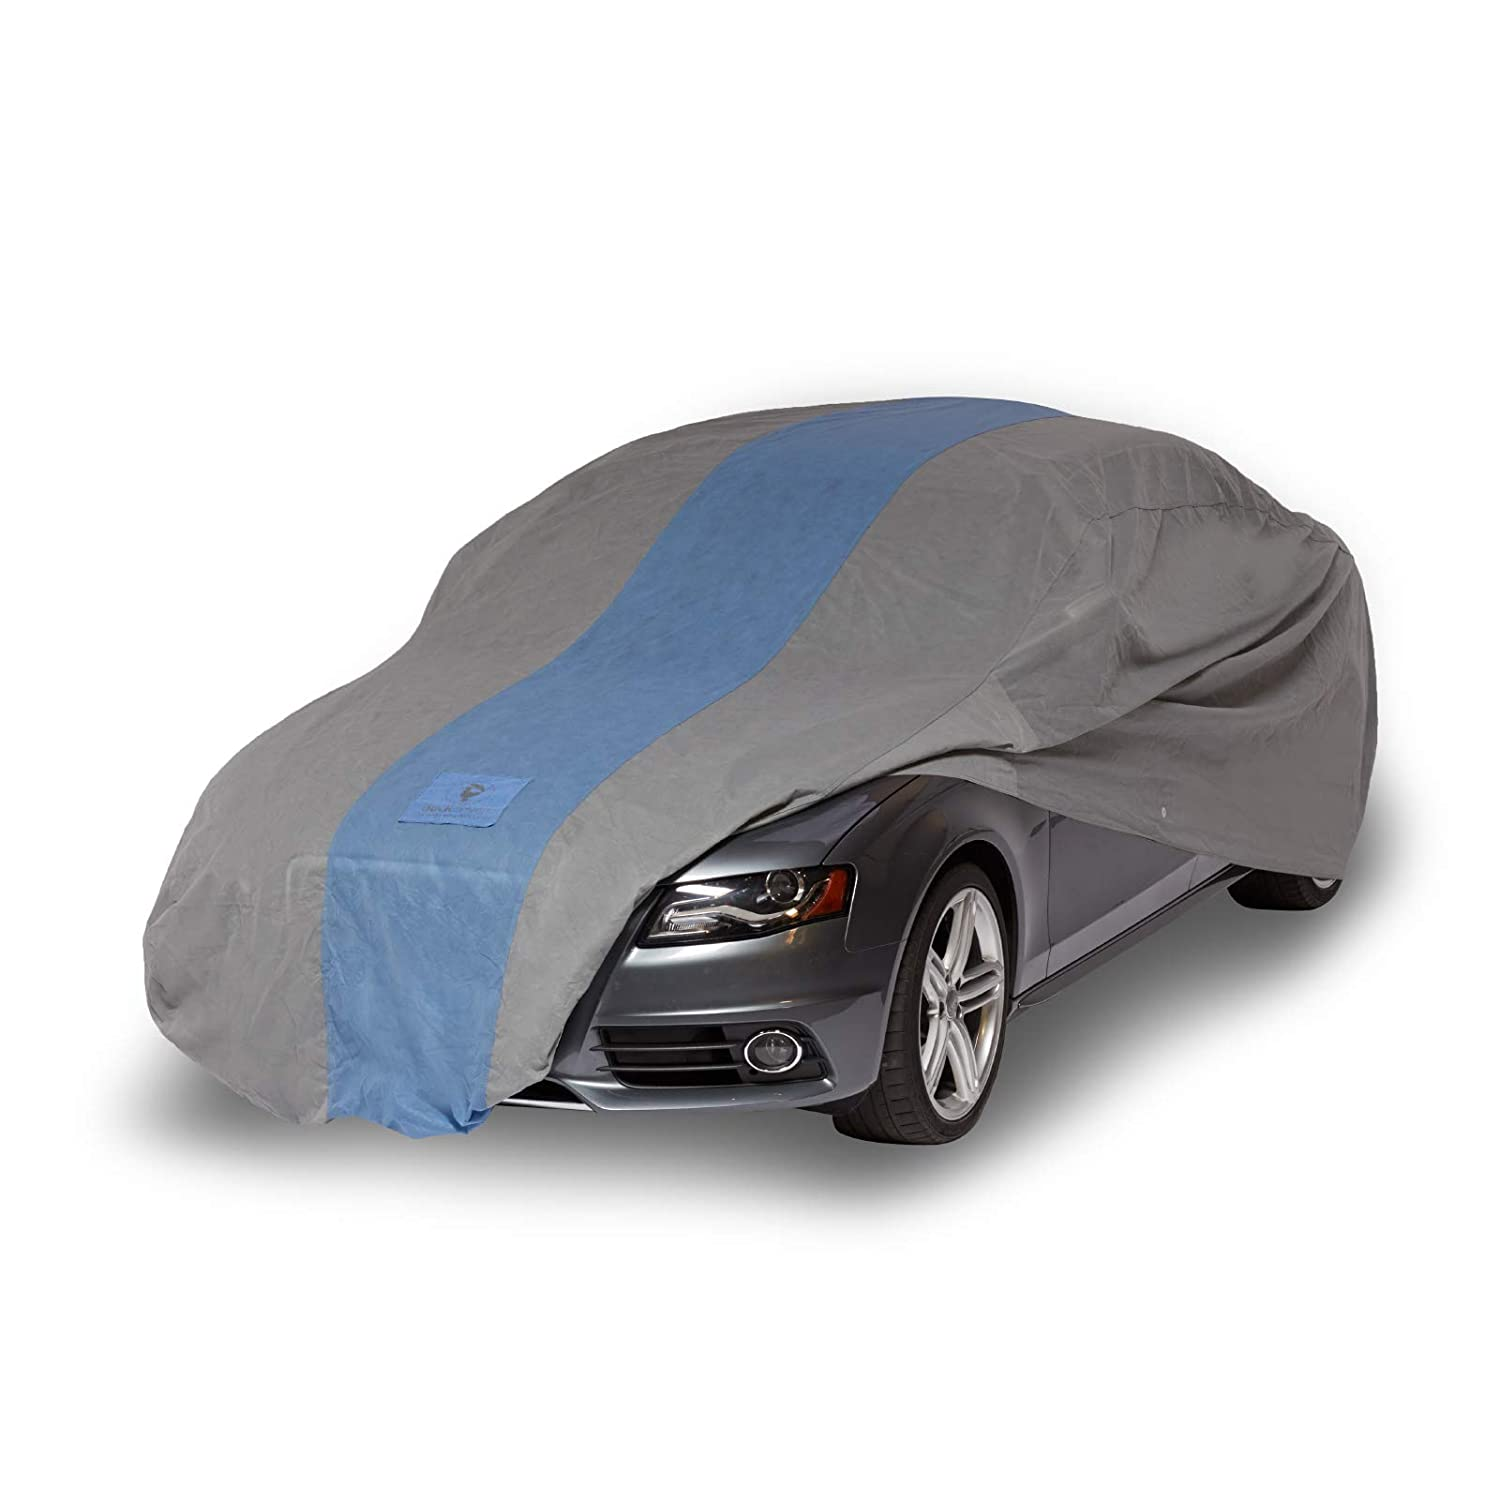 Duck Covers Defender Indoor Car Cover, Limited 2 Year Warranty,  Fits Sedans up to 16 ft. 8 in. A1C200